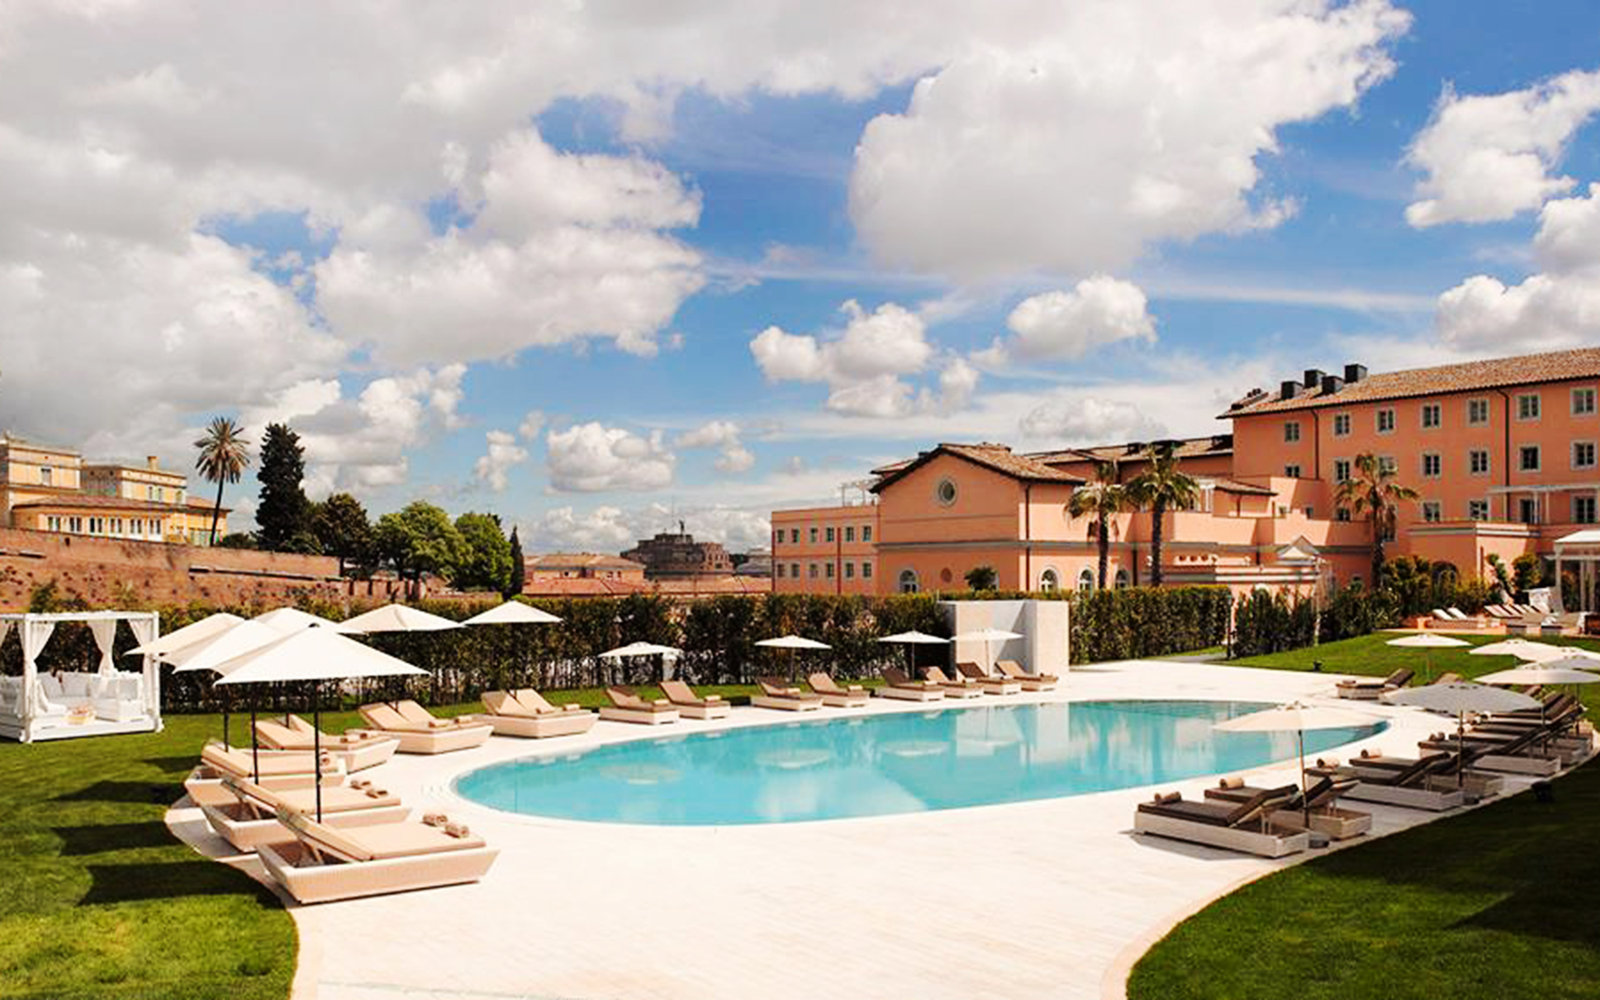 Gran meli villa agrippina travel leisure for Hotel gran melia villa agrippina rome